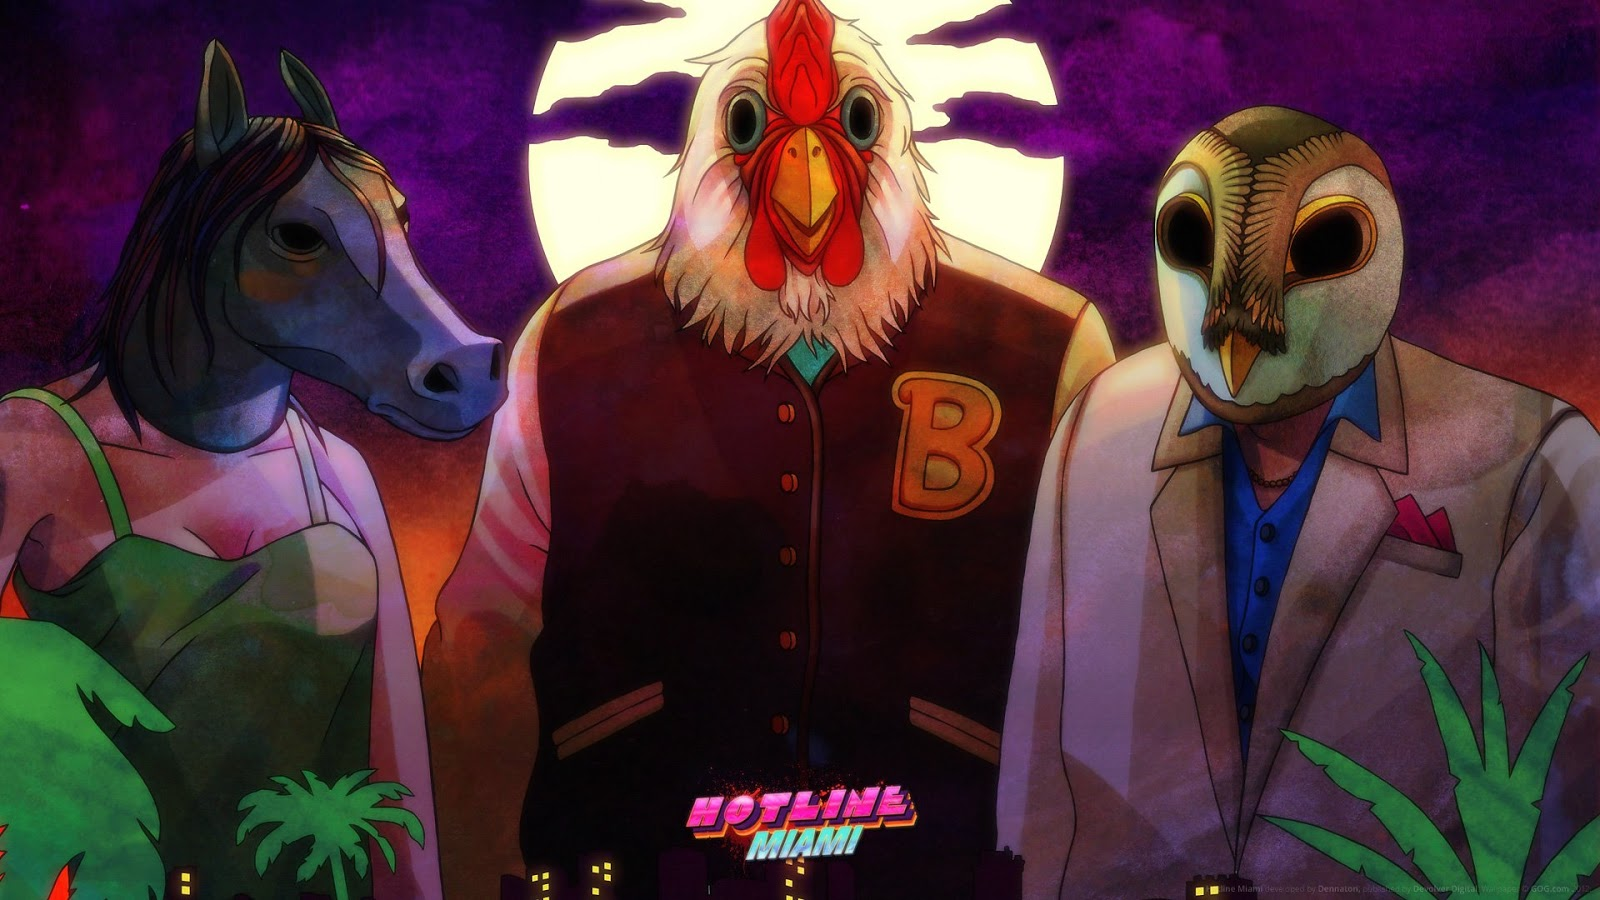 """Hotline Miami 2"" Expected in Q3 2014 - Official Twitter Reveals Anticipated Release Date"